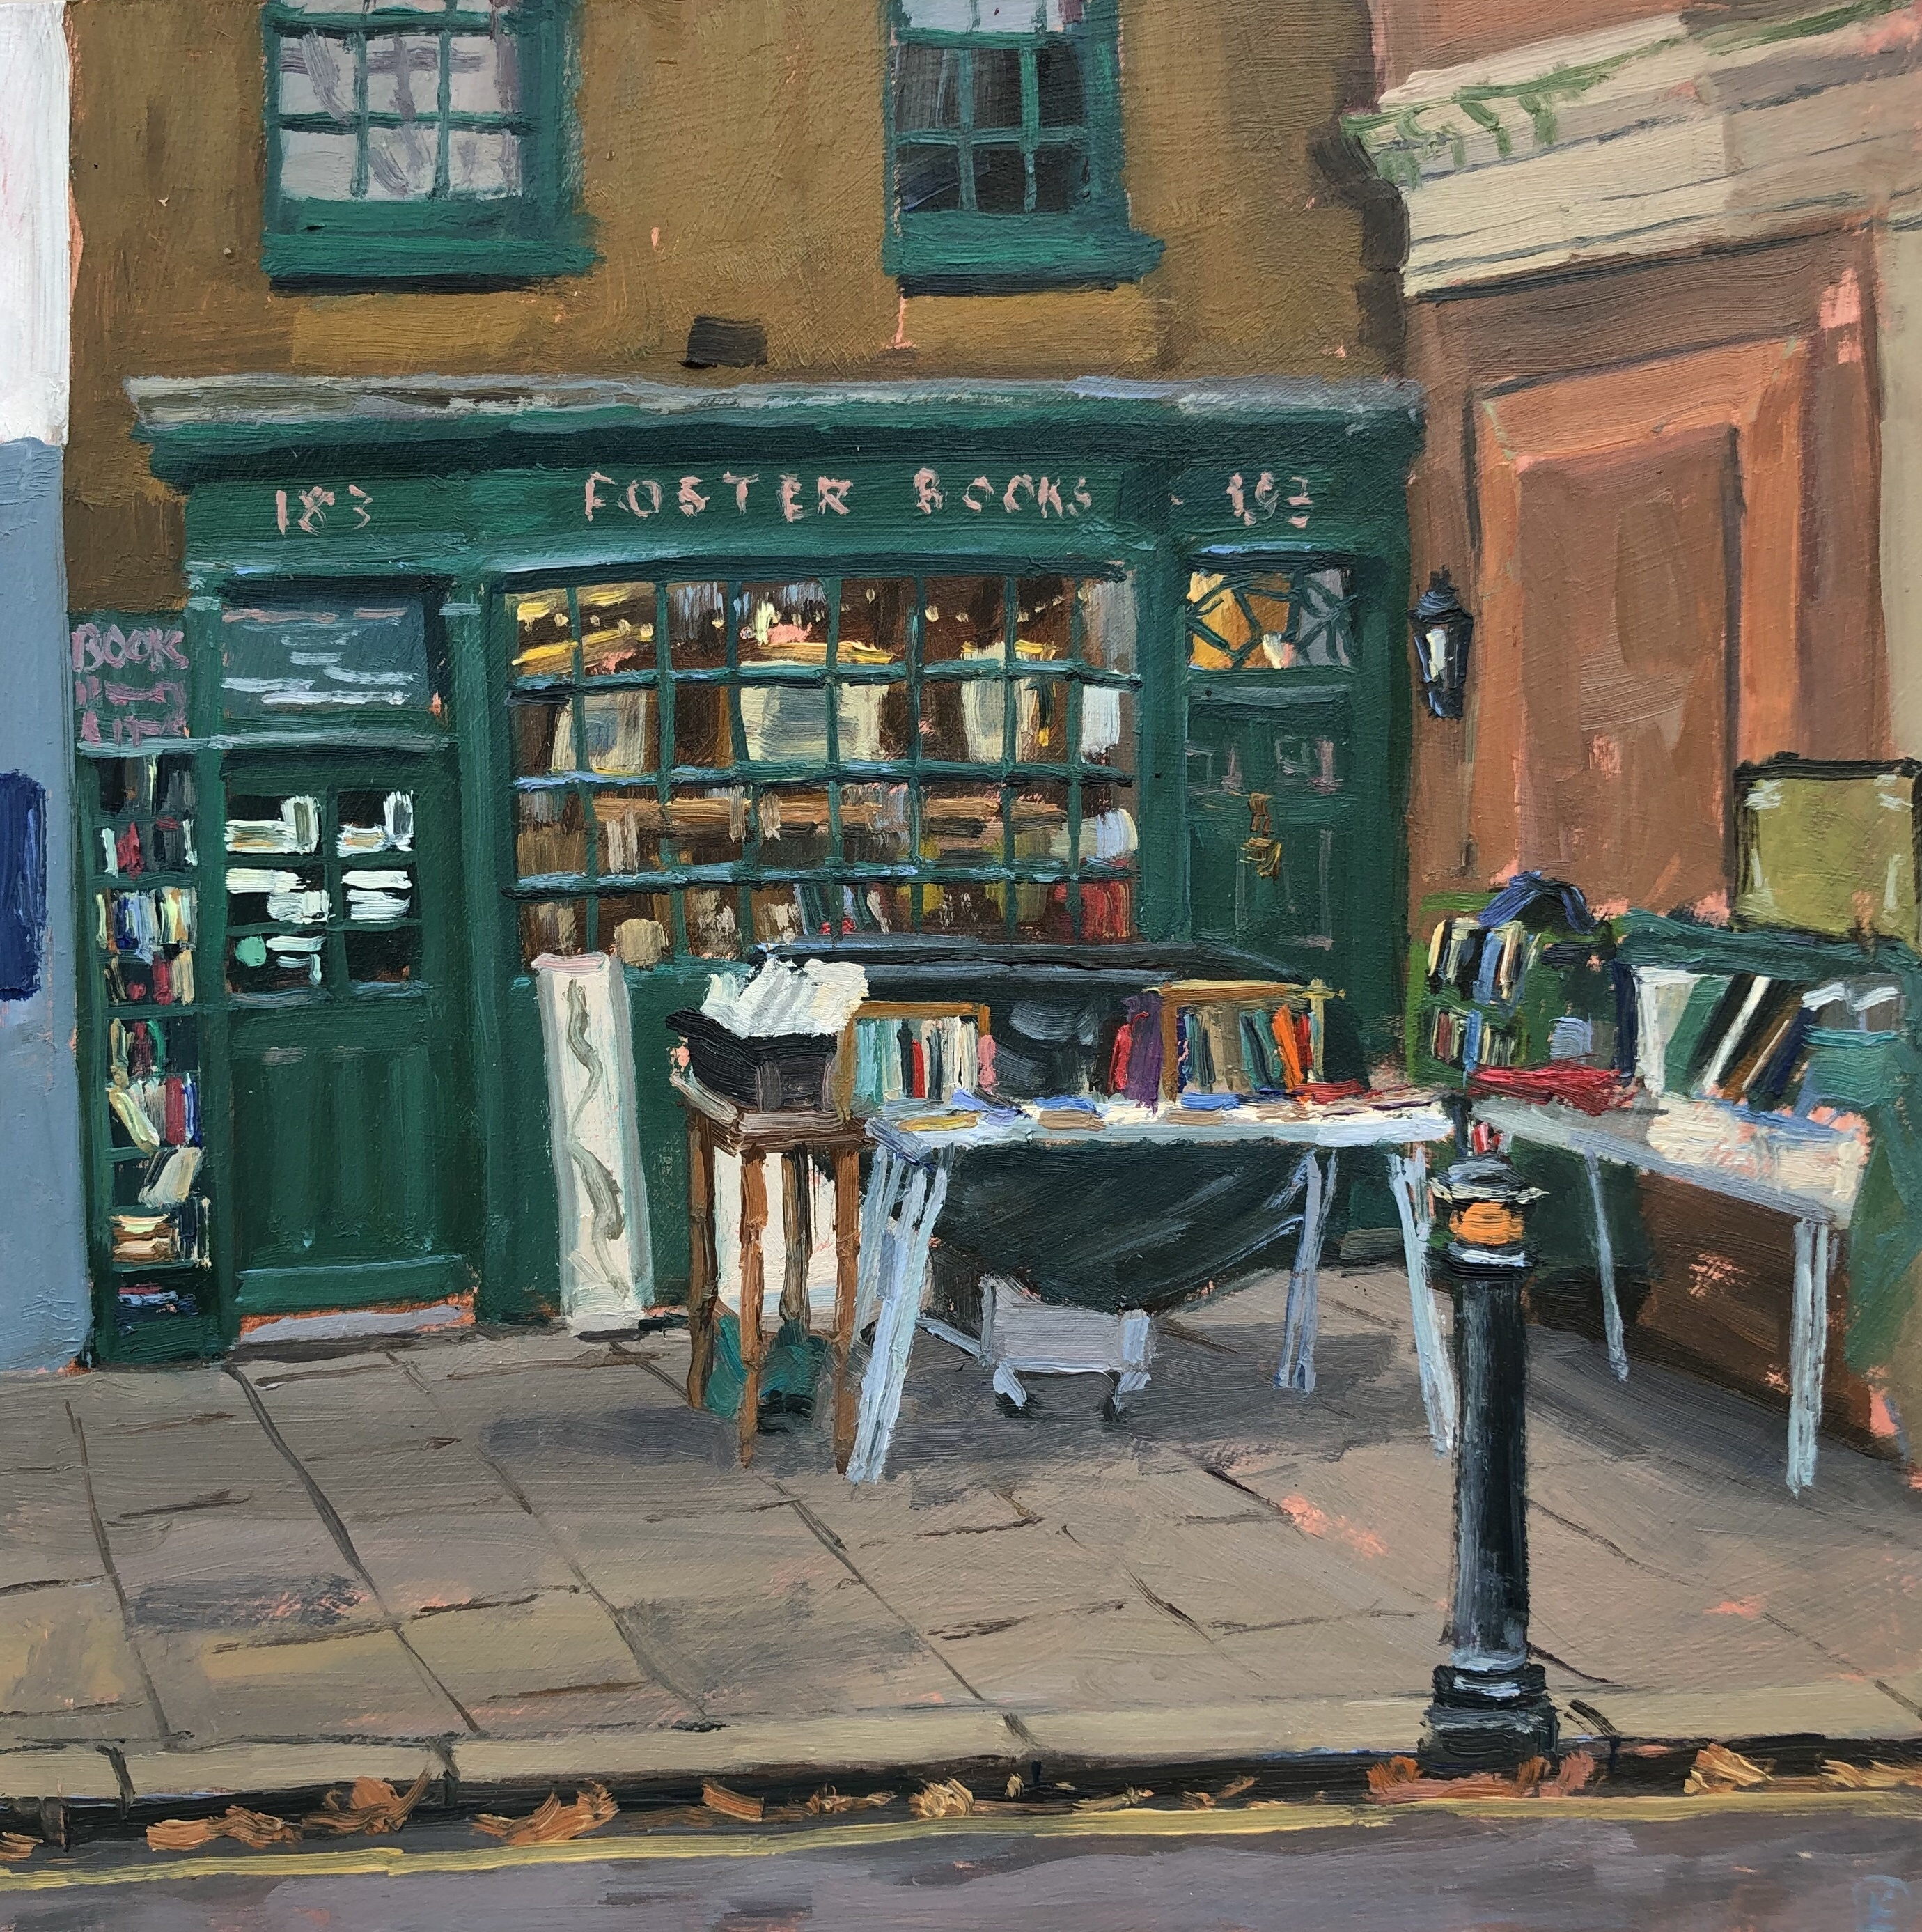 Foster's Bookshop, Chiswick by Lesley Dabson